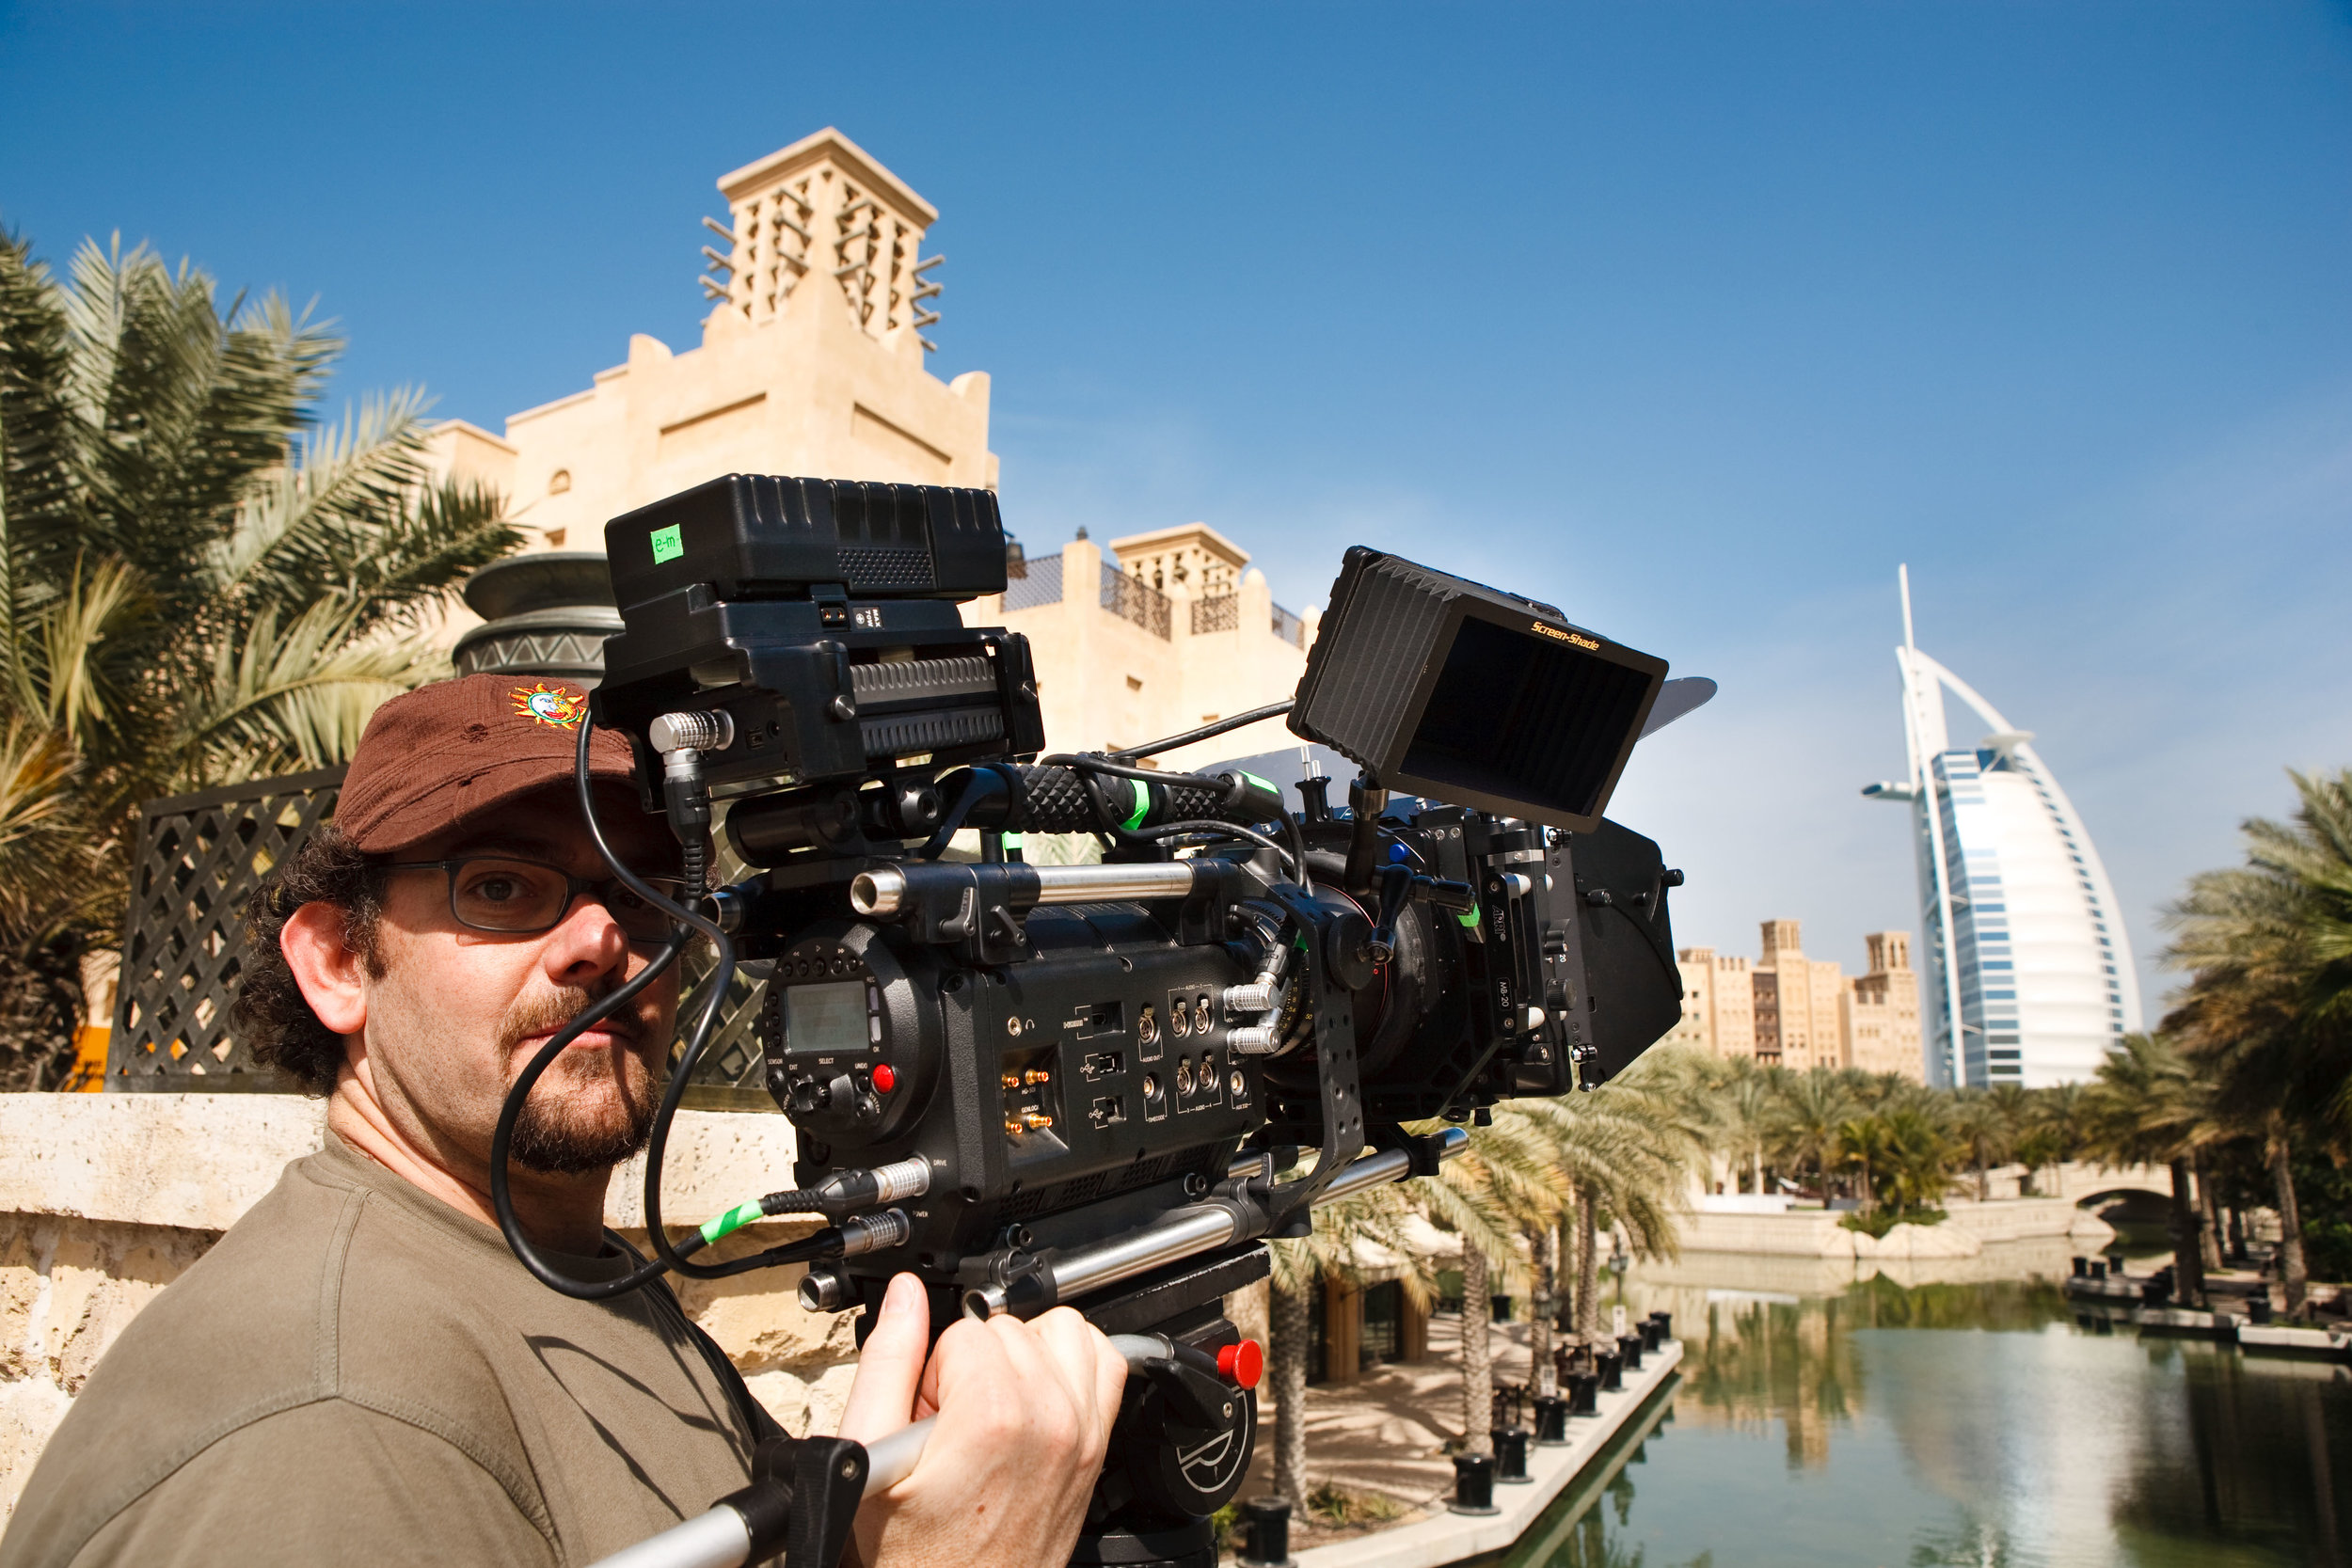 e-motion_BackStage_Le_RedOne_Di_e-motion_in_Azione_a_Dubai.jpg